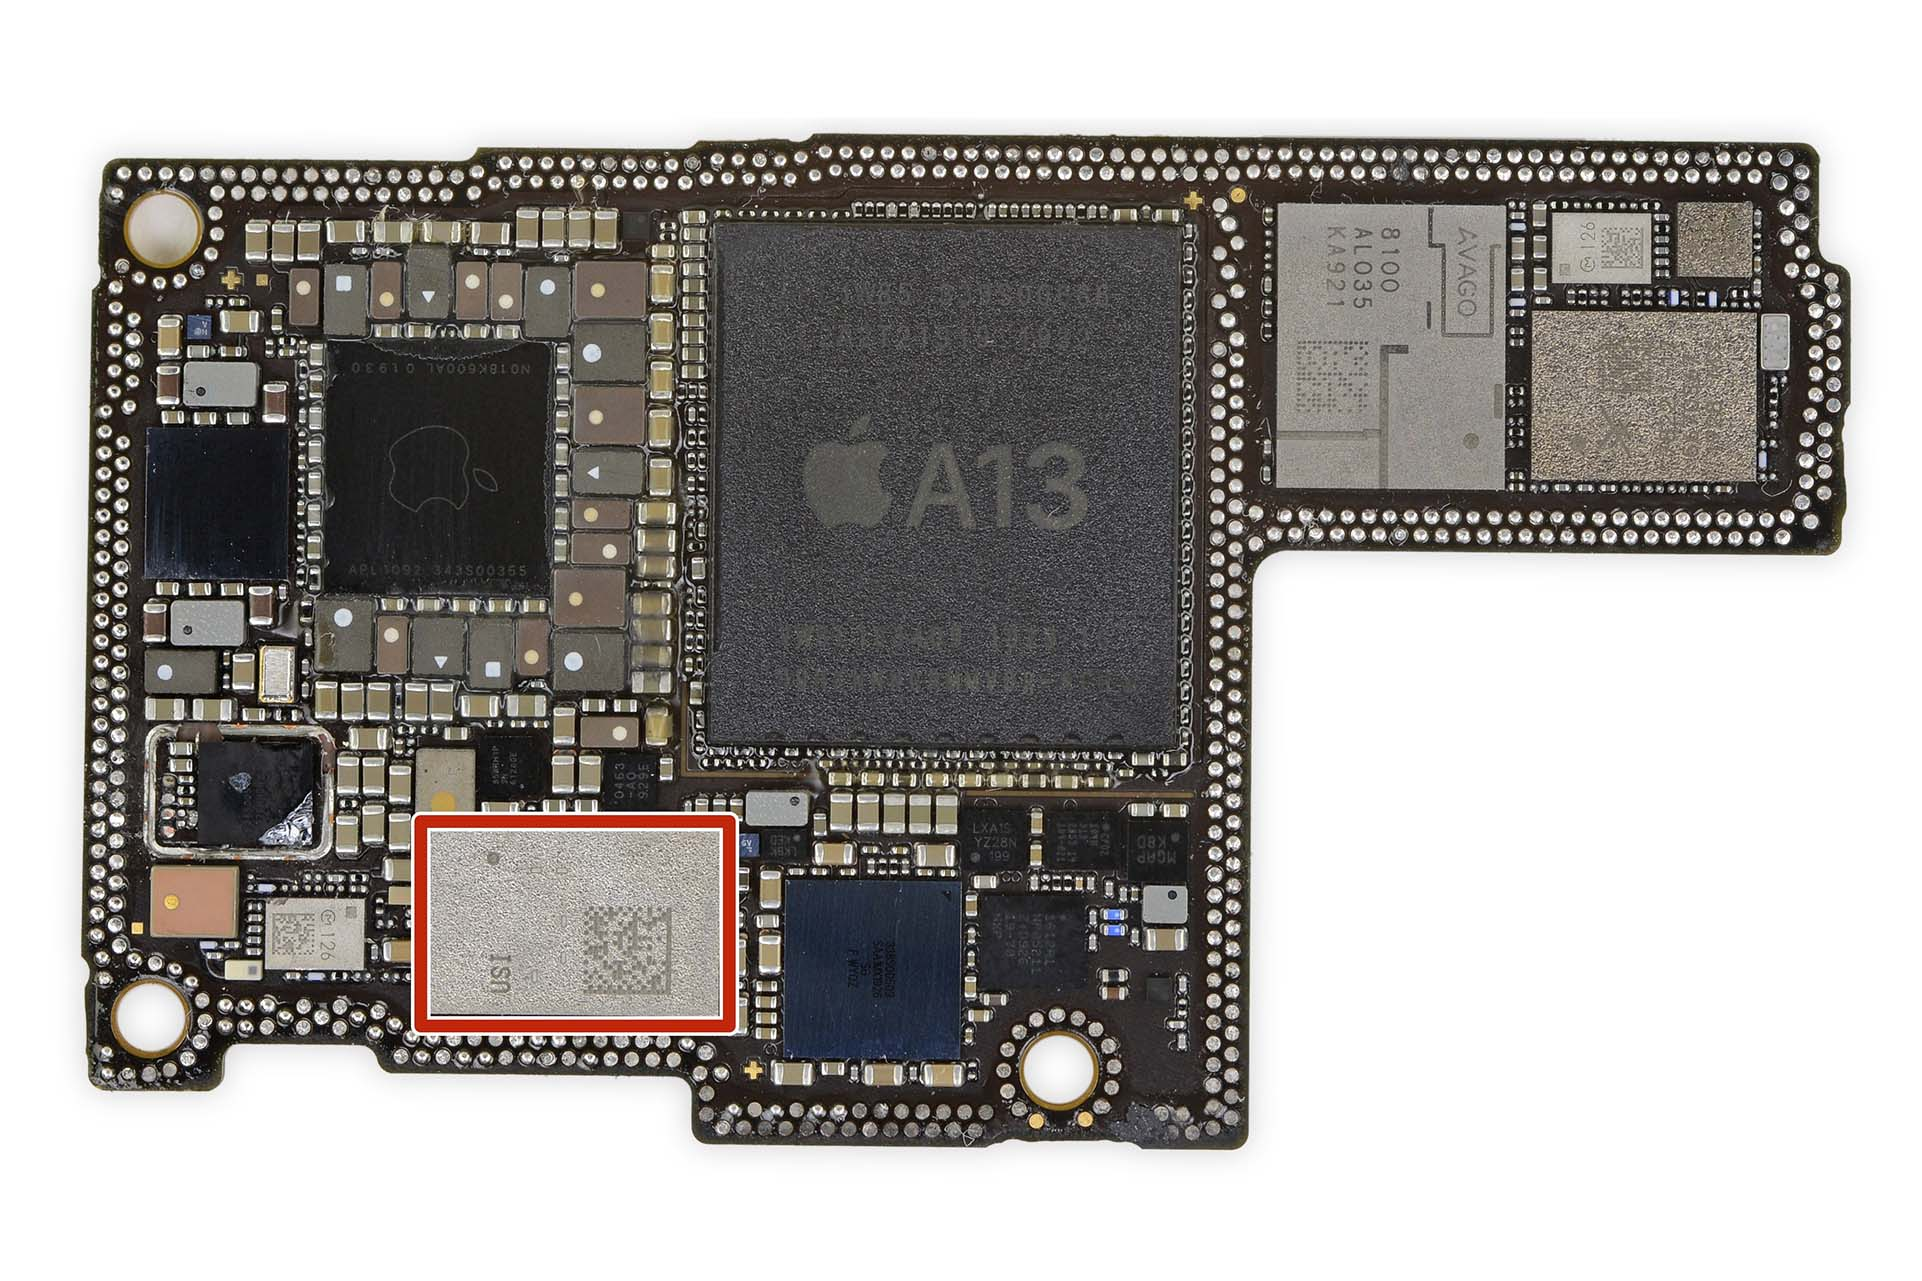 The iPhone 11 Pro Max's logic board with Apple's U1 chip highlighted